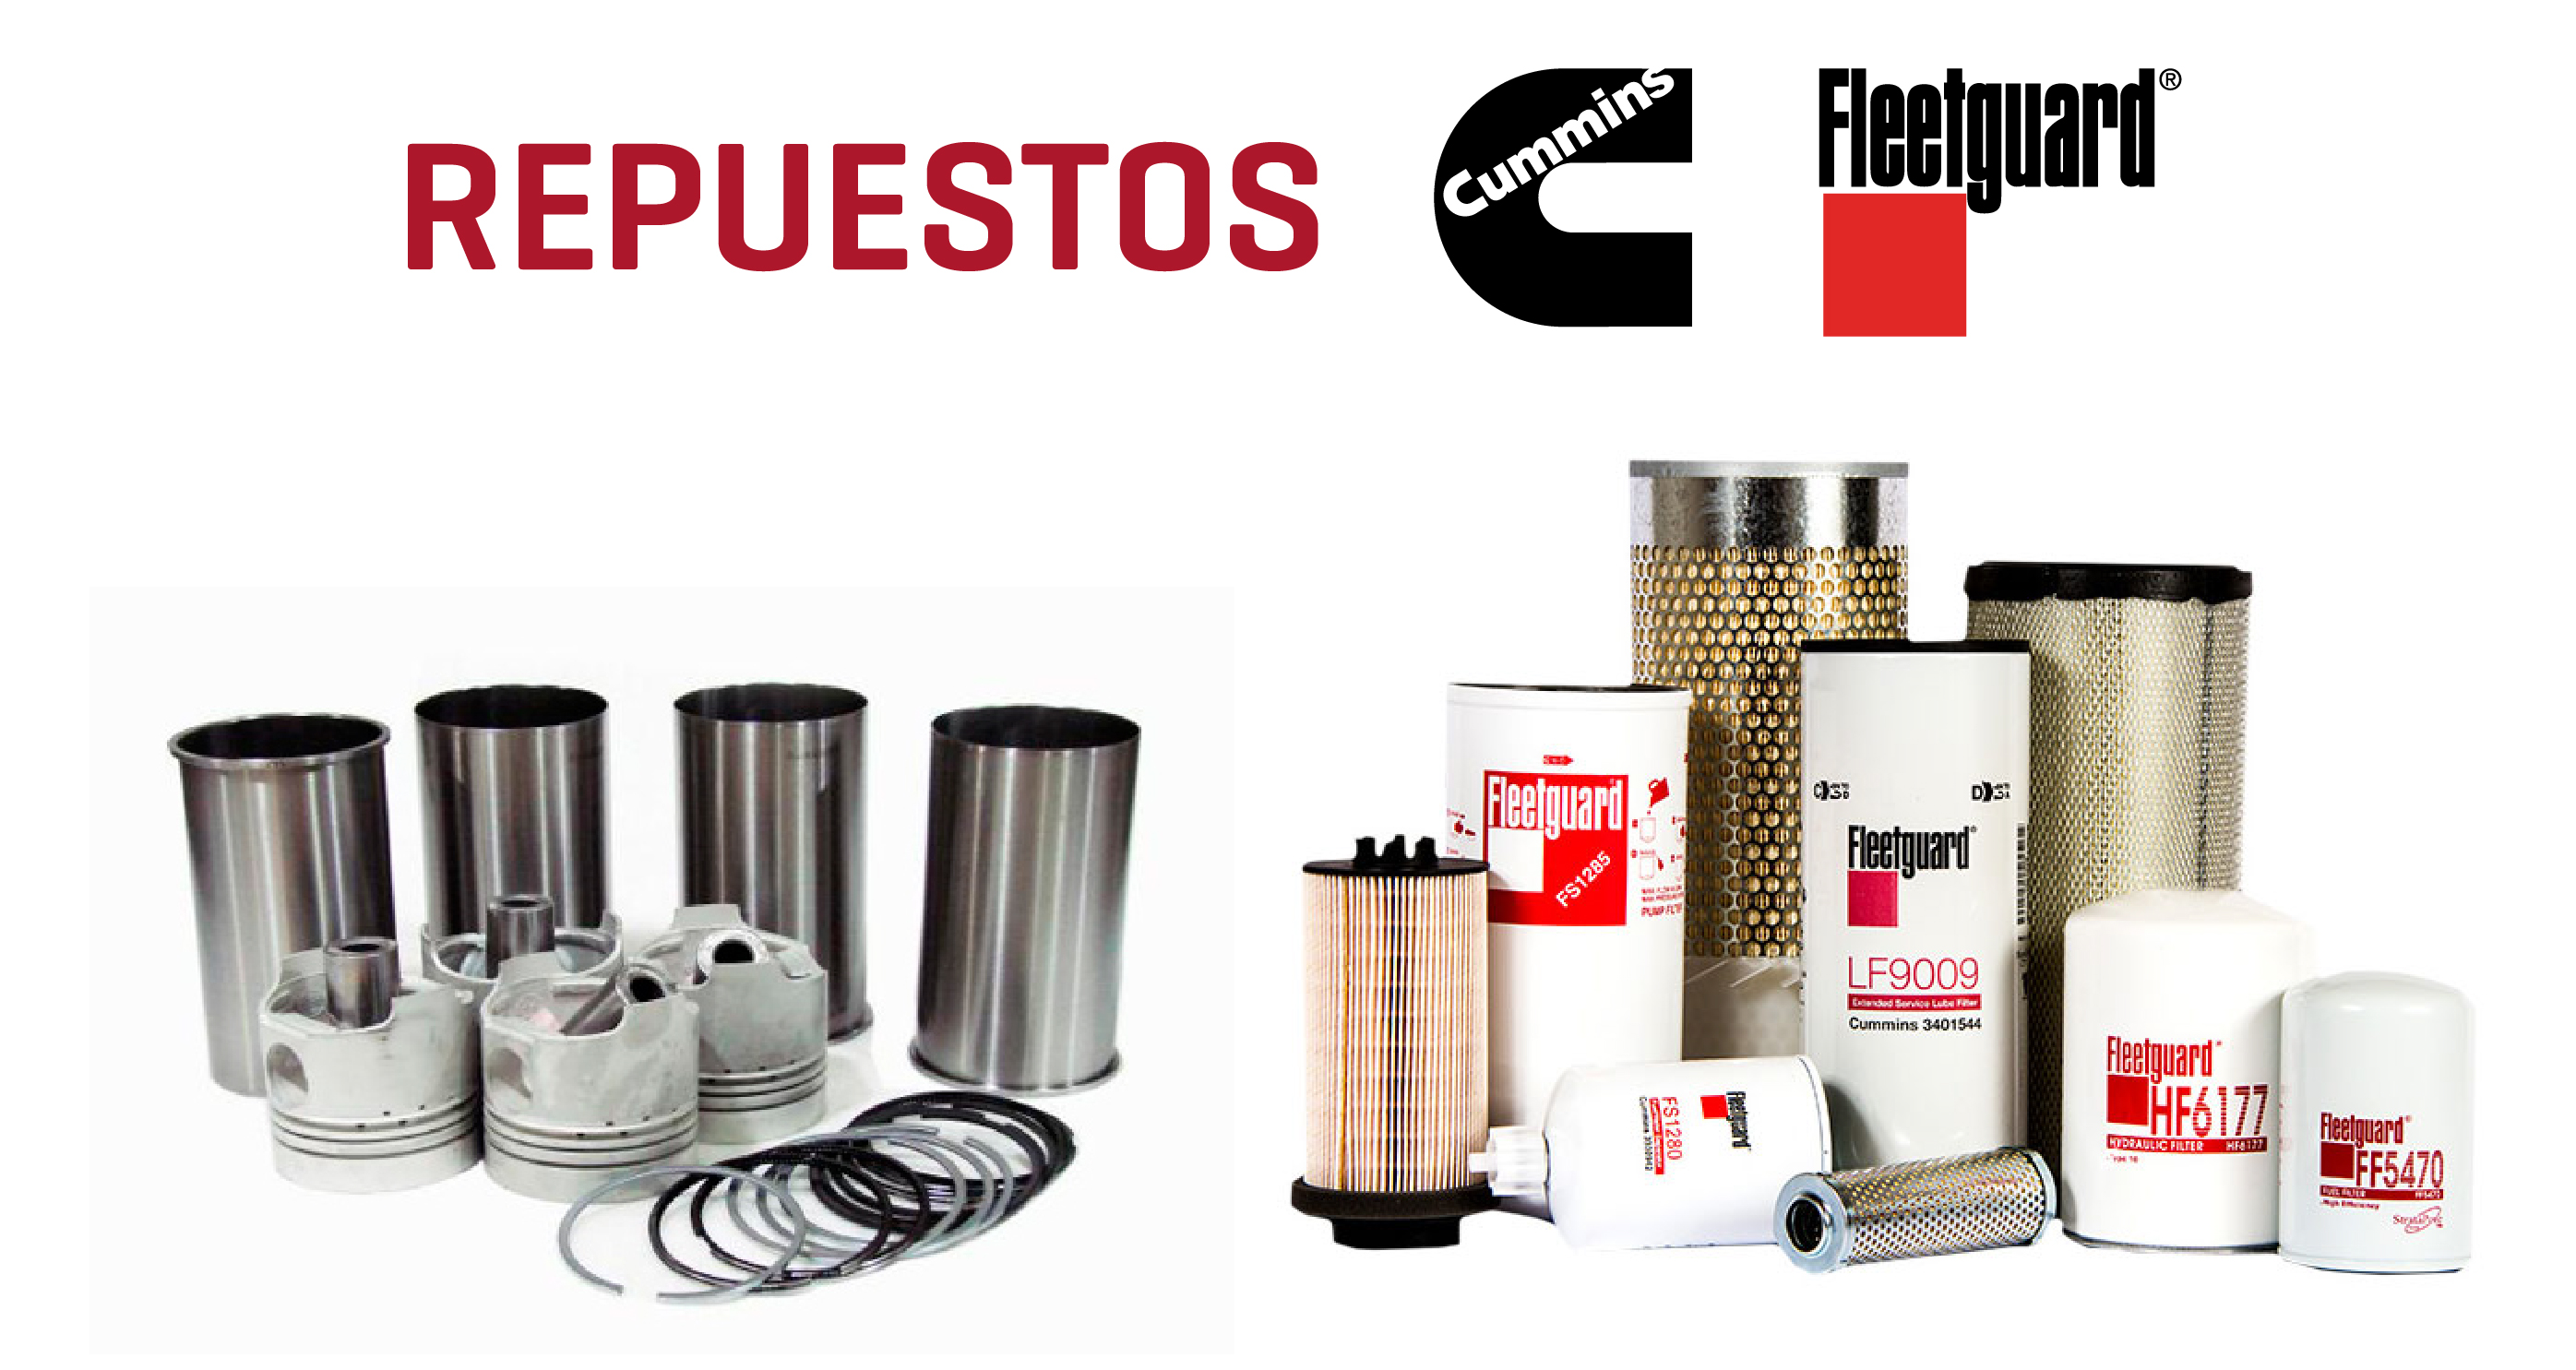 Repuestos cummins filtros fleetguard